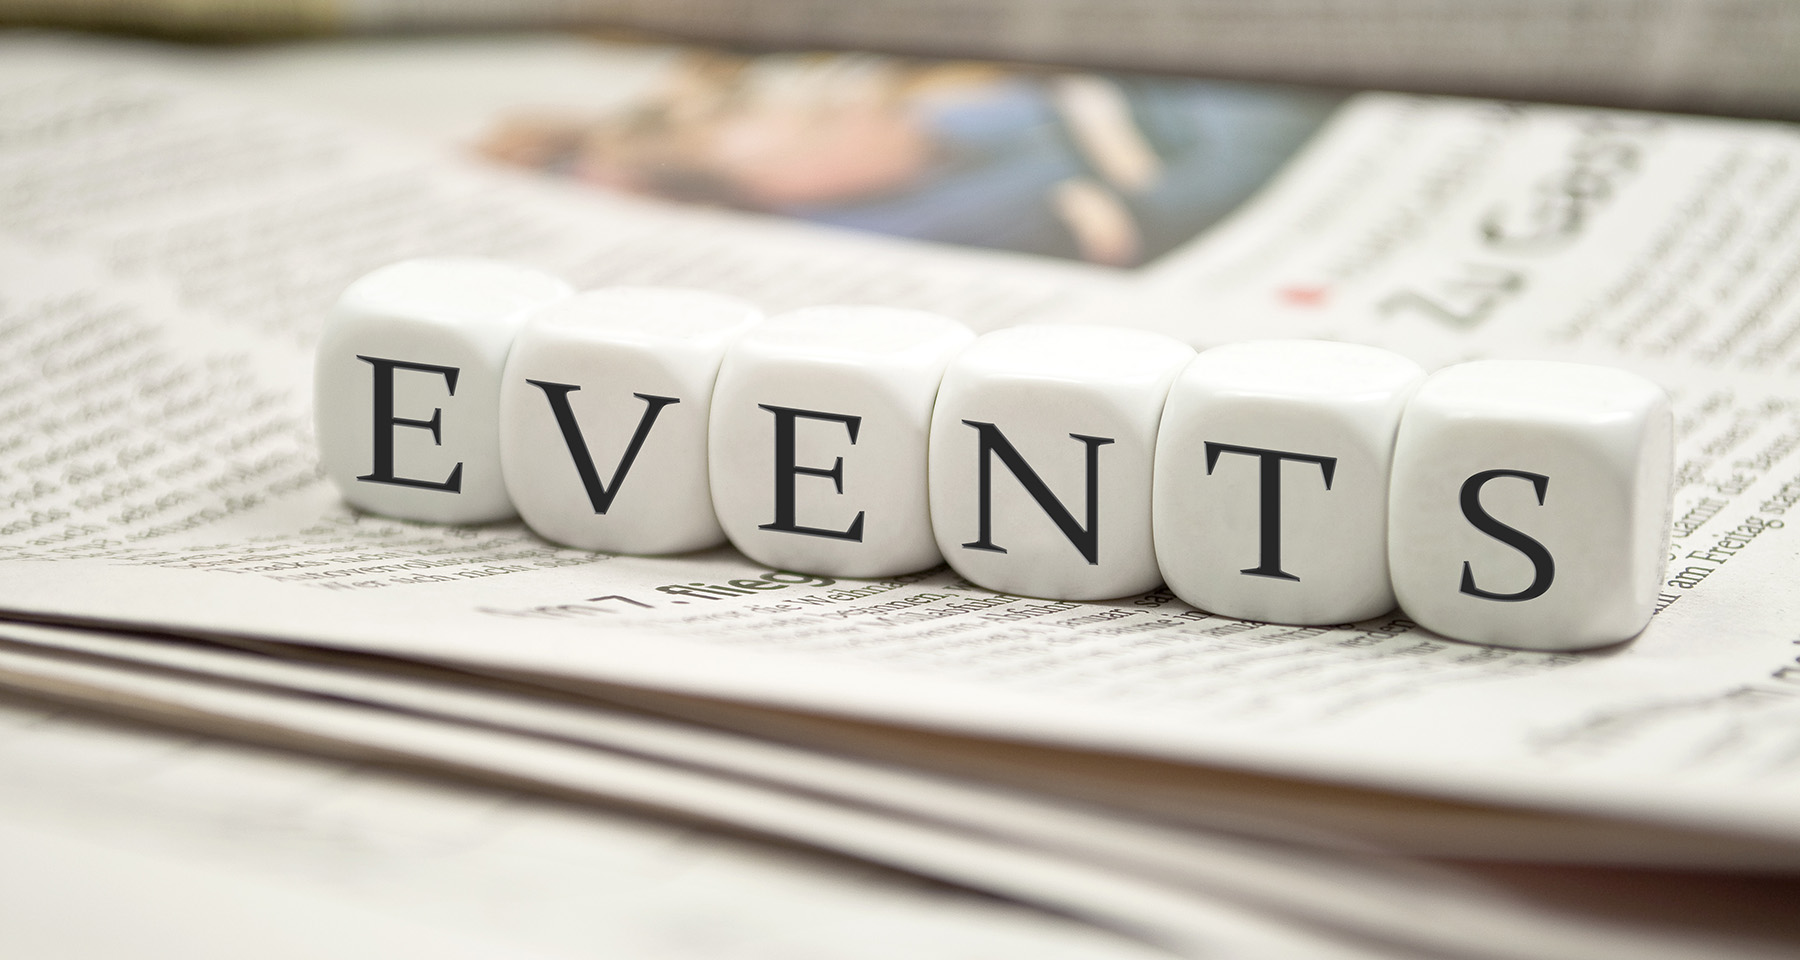 Is the events business right for local media companies?